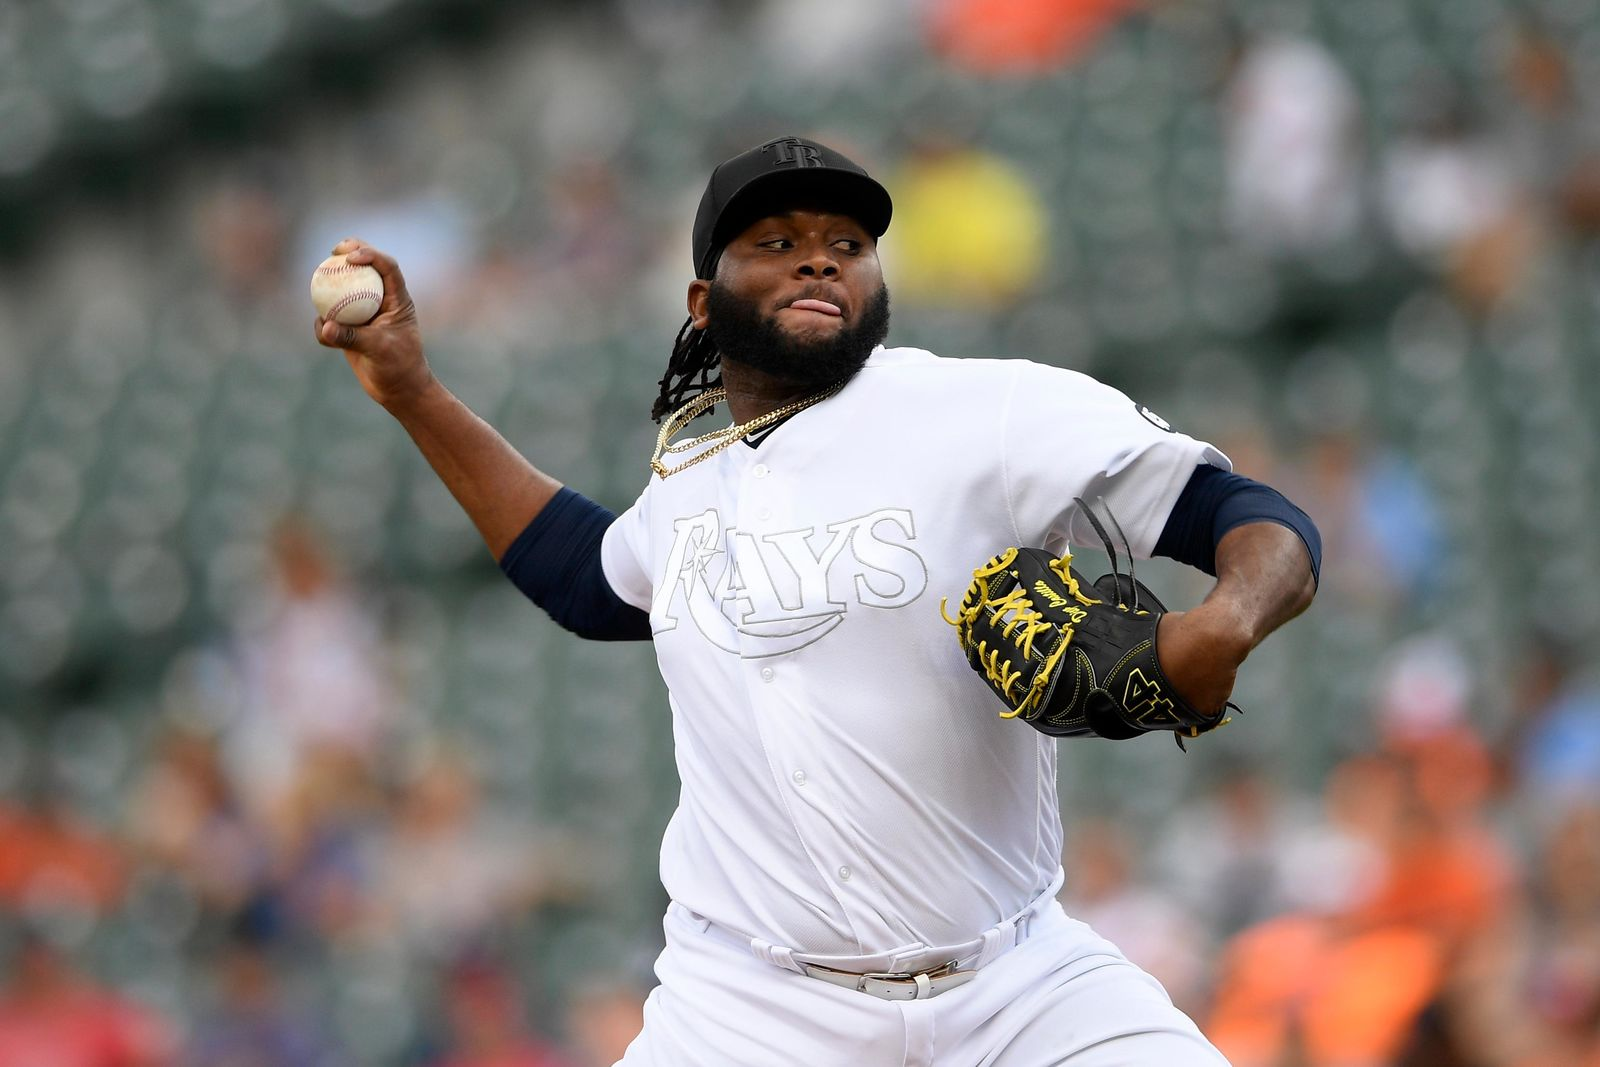 Tampa Bay Rays starting pitcher Diego Castillo delivers during the first inning of a baseball game against the Baltimore Orioles, Sunday, Aug. 25, 2019, in Baltimore. (AP Photo/Nick Wass)